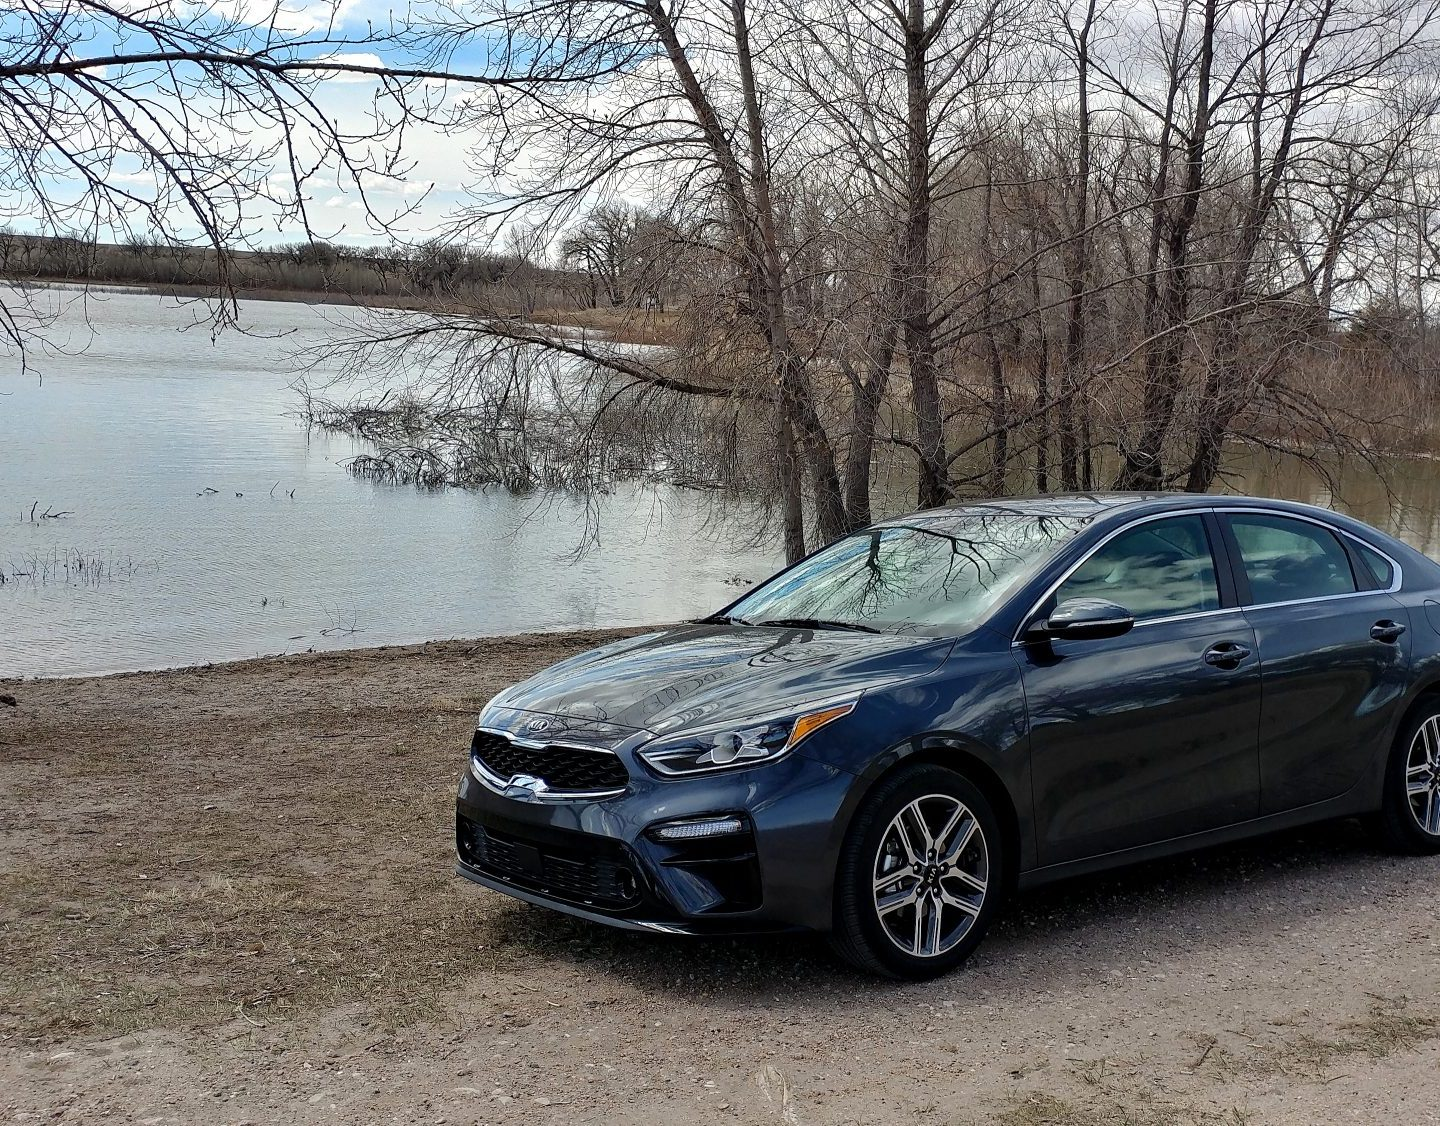 2019 Kia Forte is an Excellent Entry Car